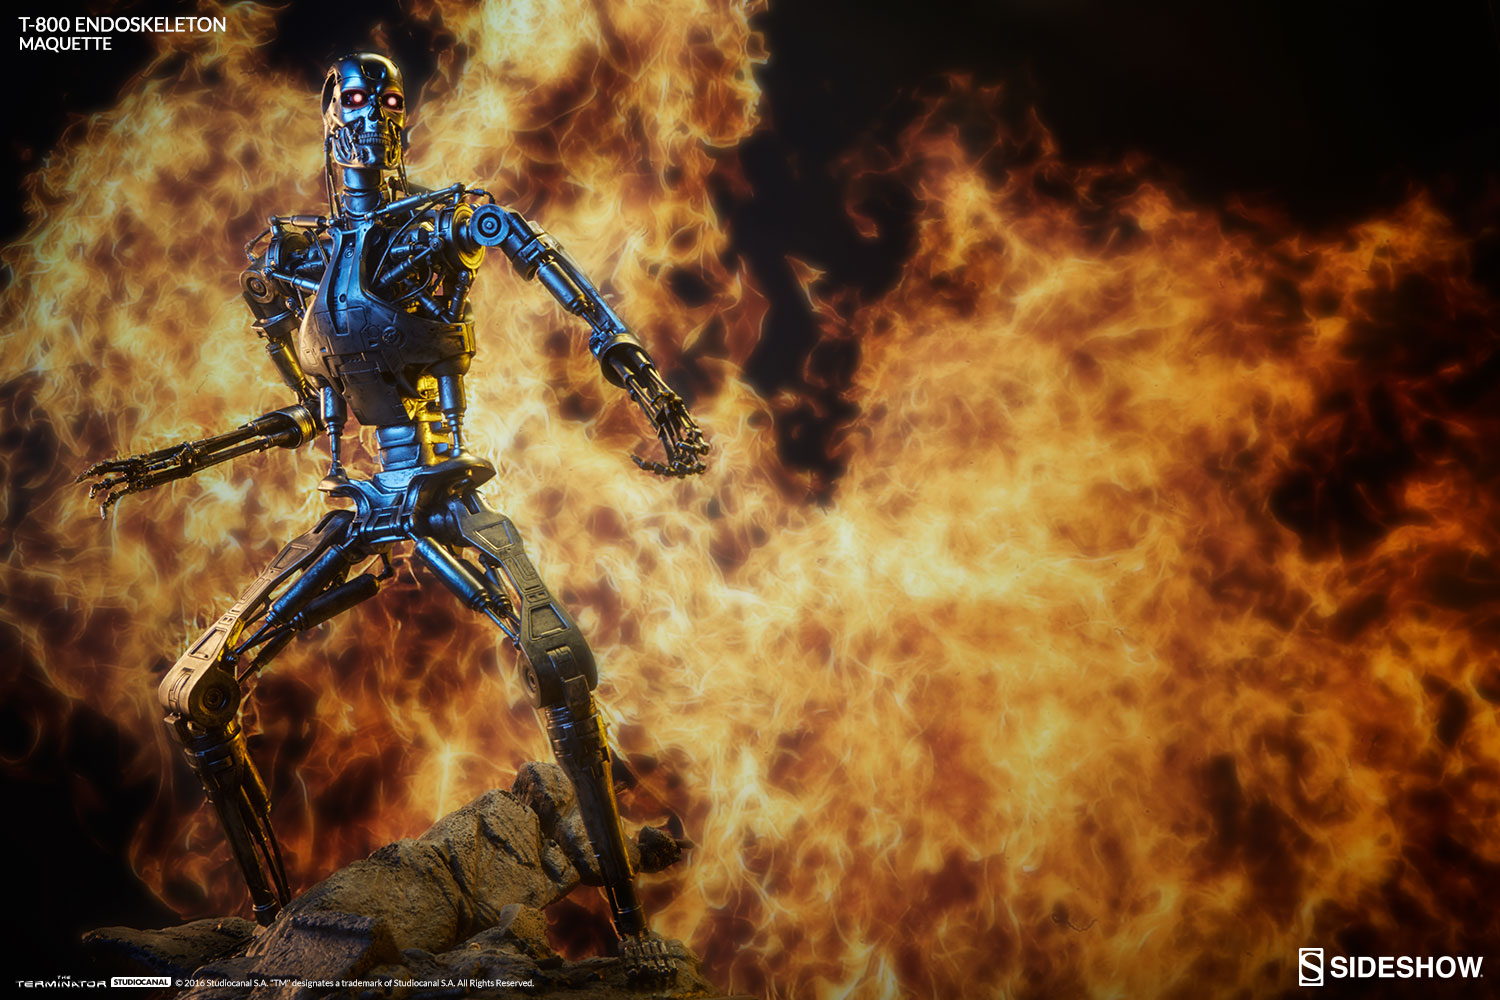 Sideshow The Terminator T-800 Endoskeleton Maquette Pre-Orders